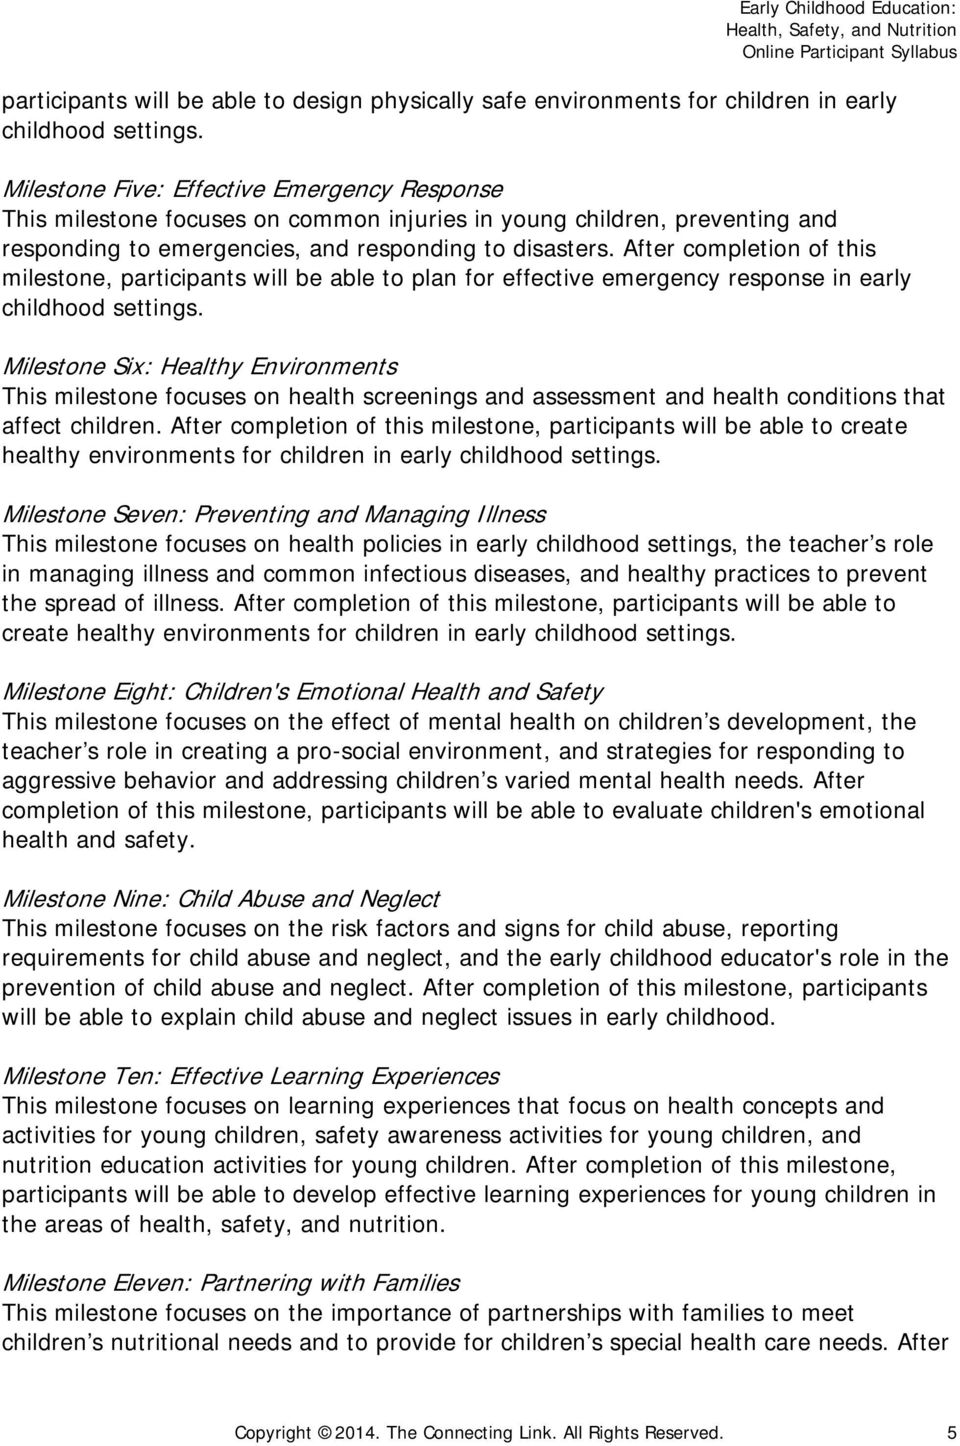 Early Childhood Education Health Safety And Nutrition Pdf